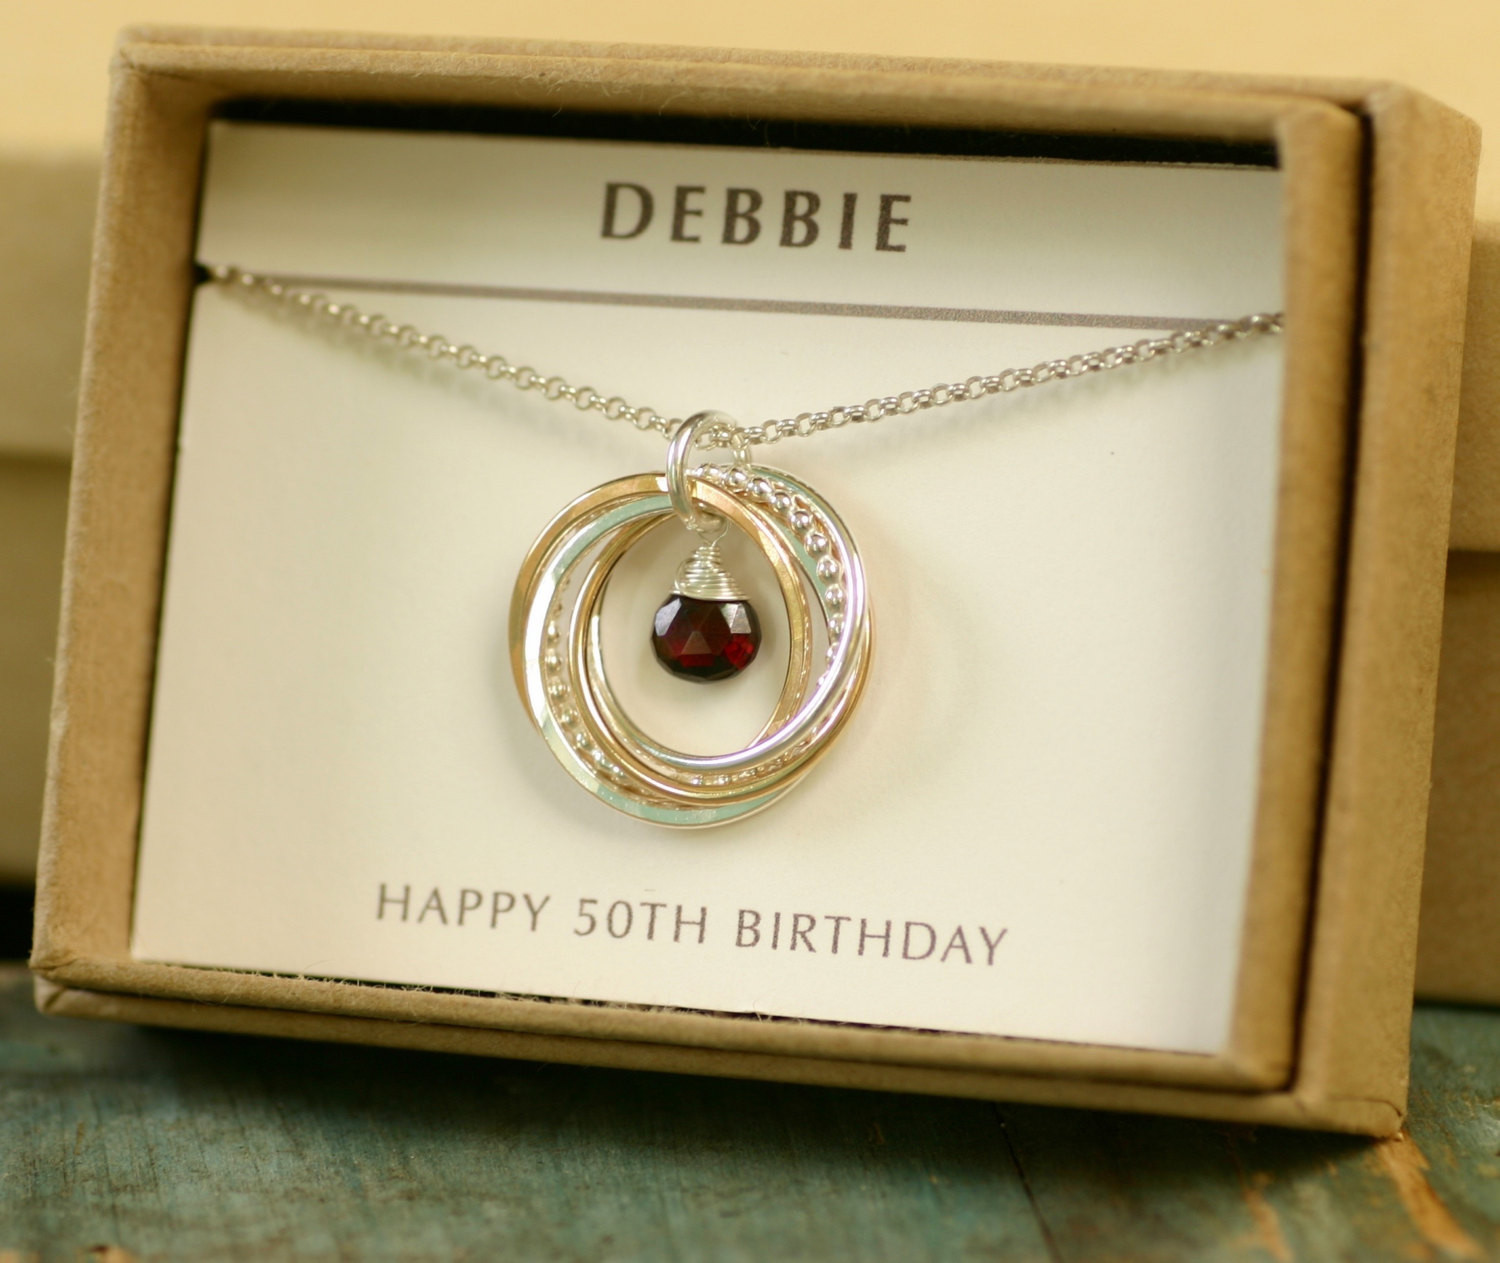 Best ideas about Best 50th Birthday Gifts For Her . Save or Pin Garnet necklace for her 50th birthday t for bestfriend Now.